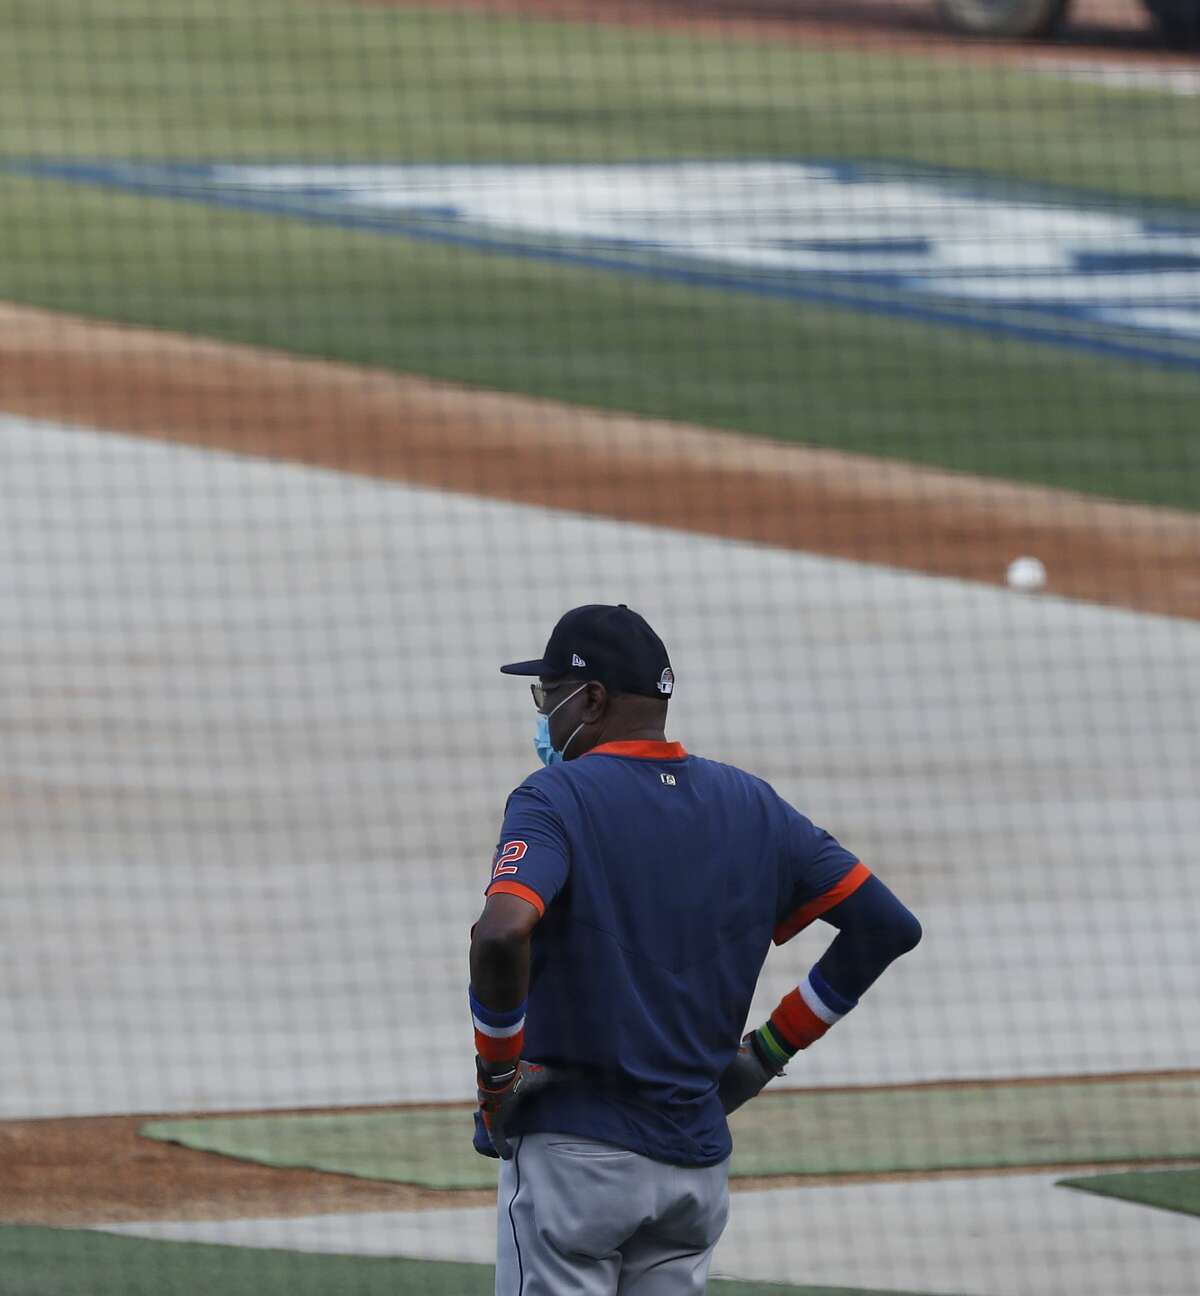 Houston Astros manager Dusty Baker Jr. watches batting practice and workouts, Sunday, October 4, 2020, in Los Angeles, as the Astros prepared to take on the Oakland Athletics in Game 1 of the ALDS, Monday, at Dodger Stadium.